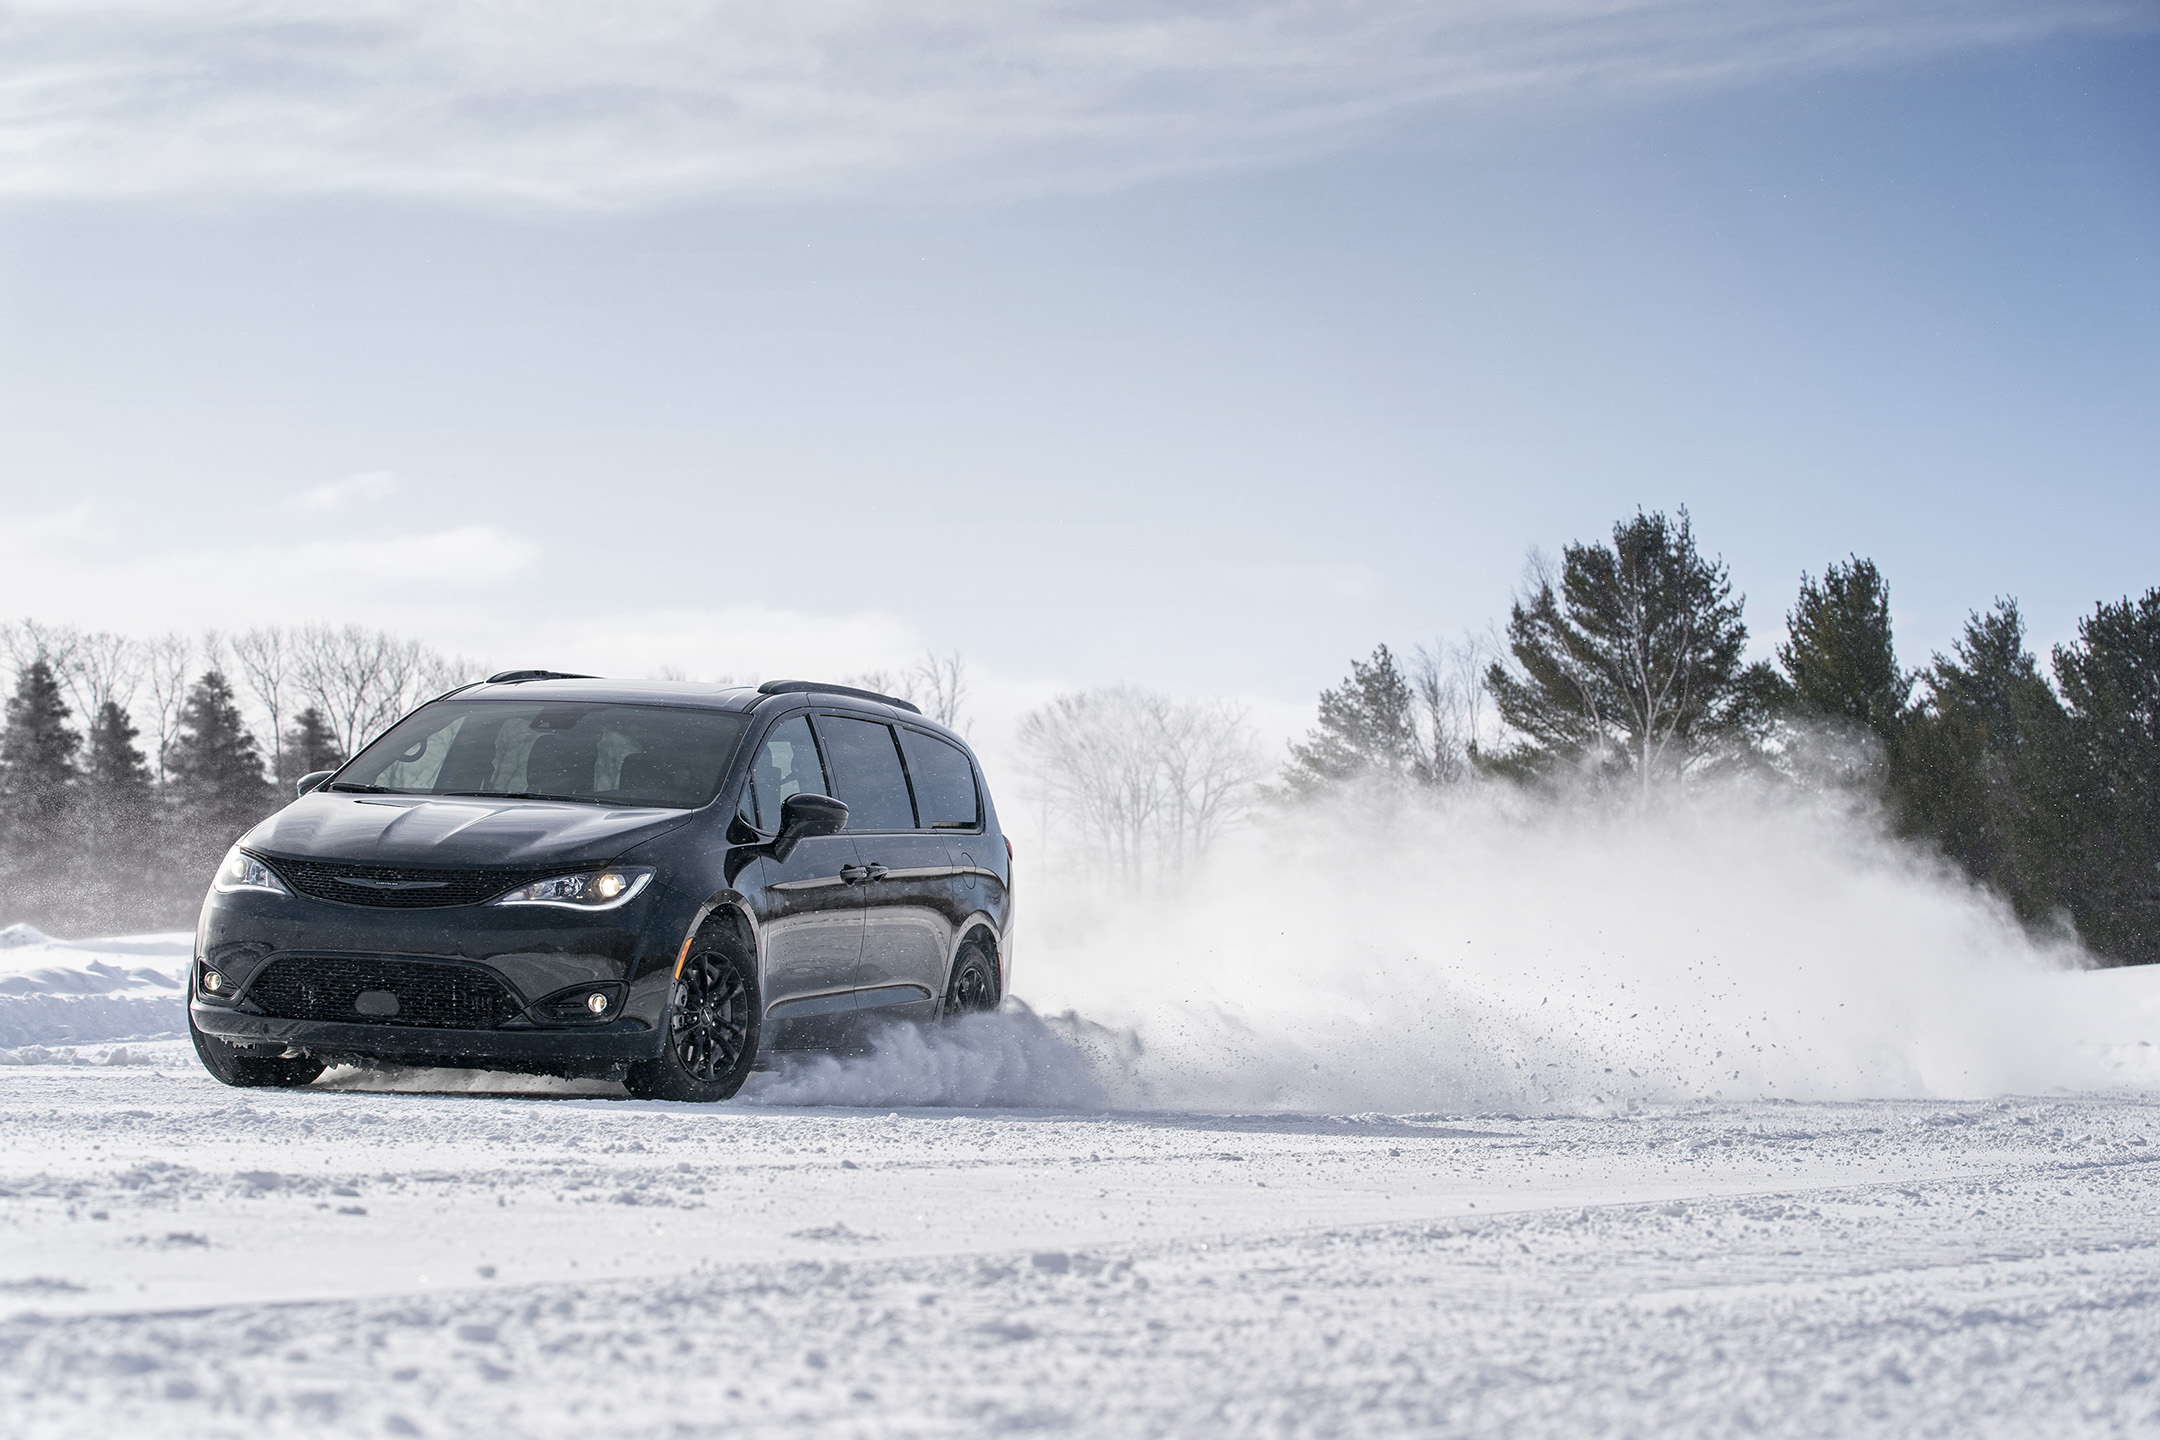 2020 Chrysler Pacifica Brings Buyers Taste of 2021 With AWD Launch Edition